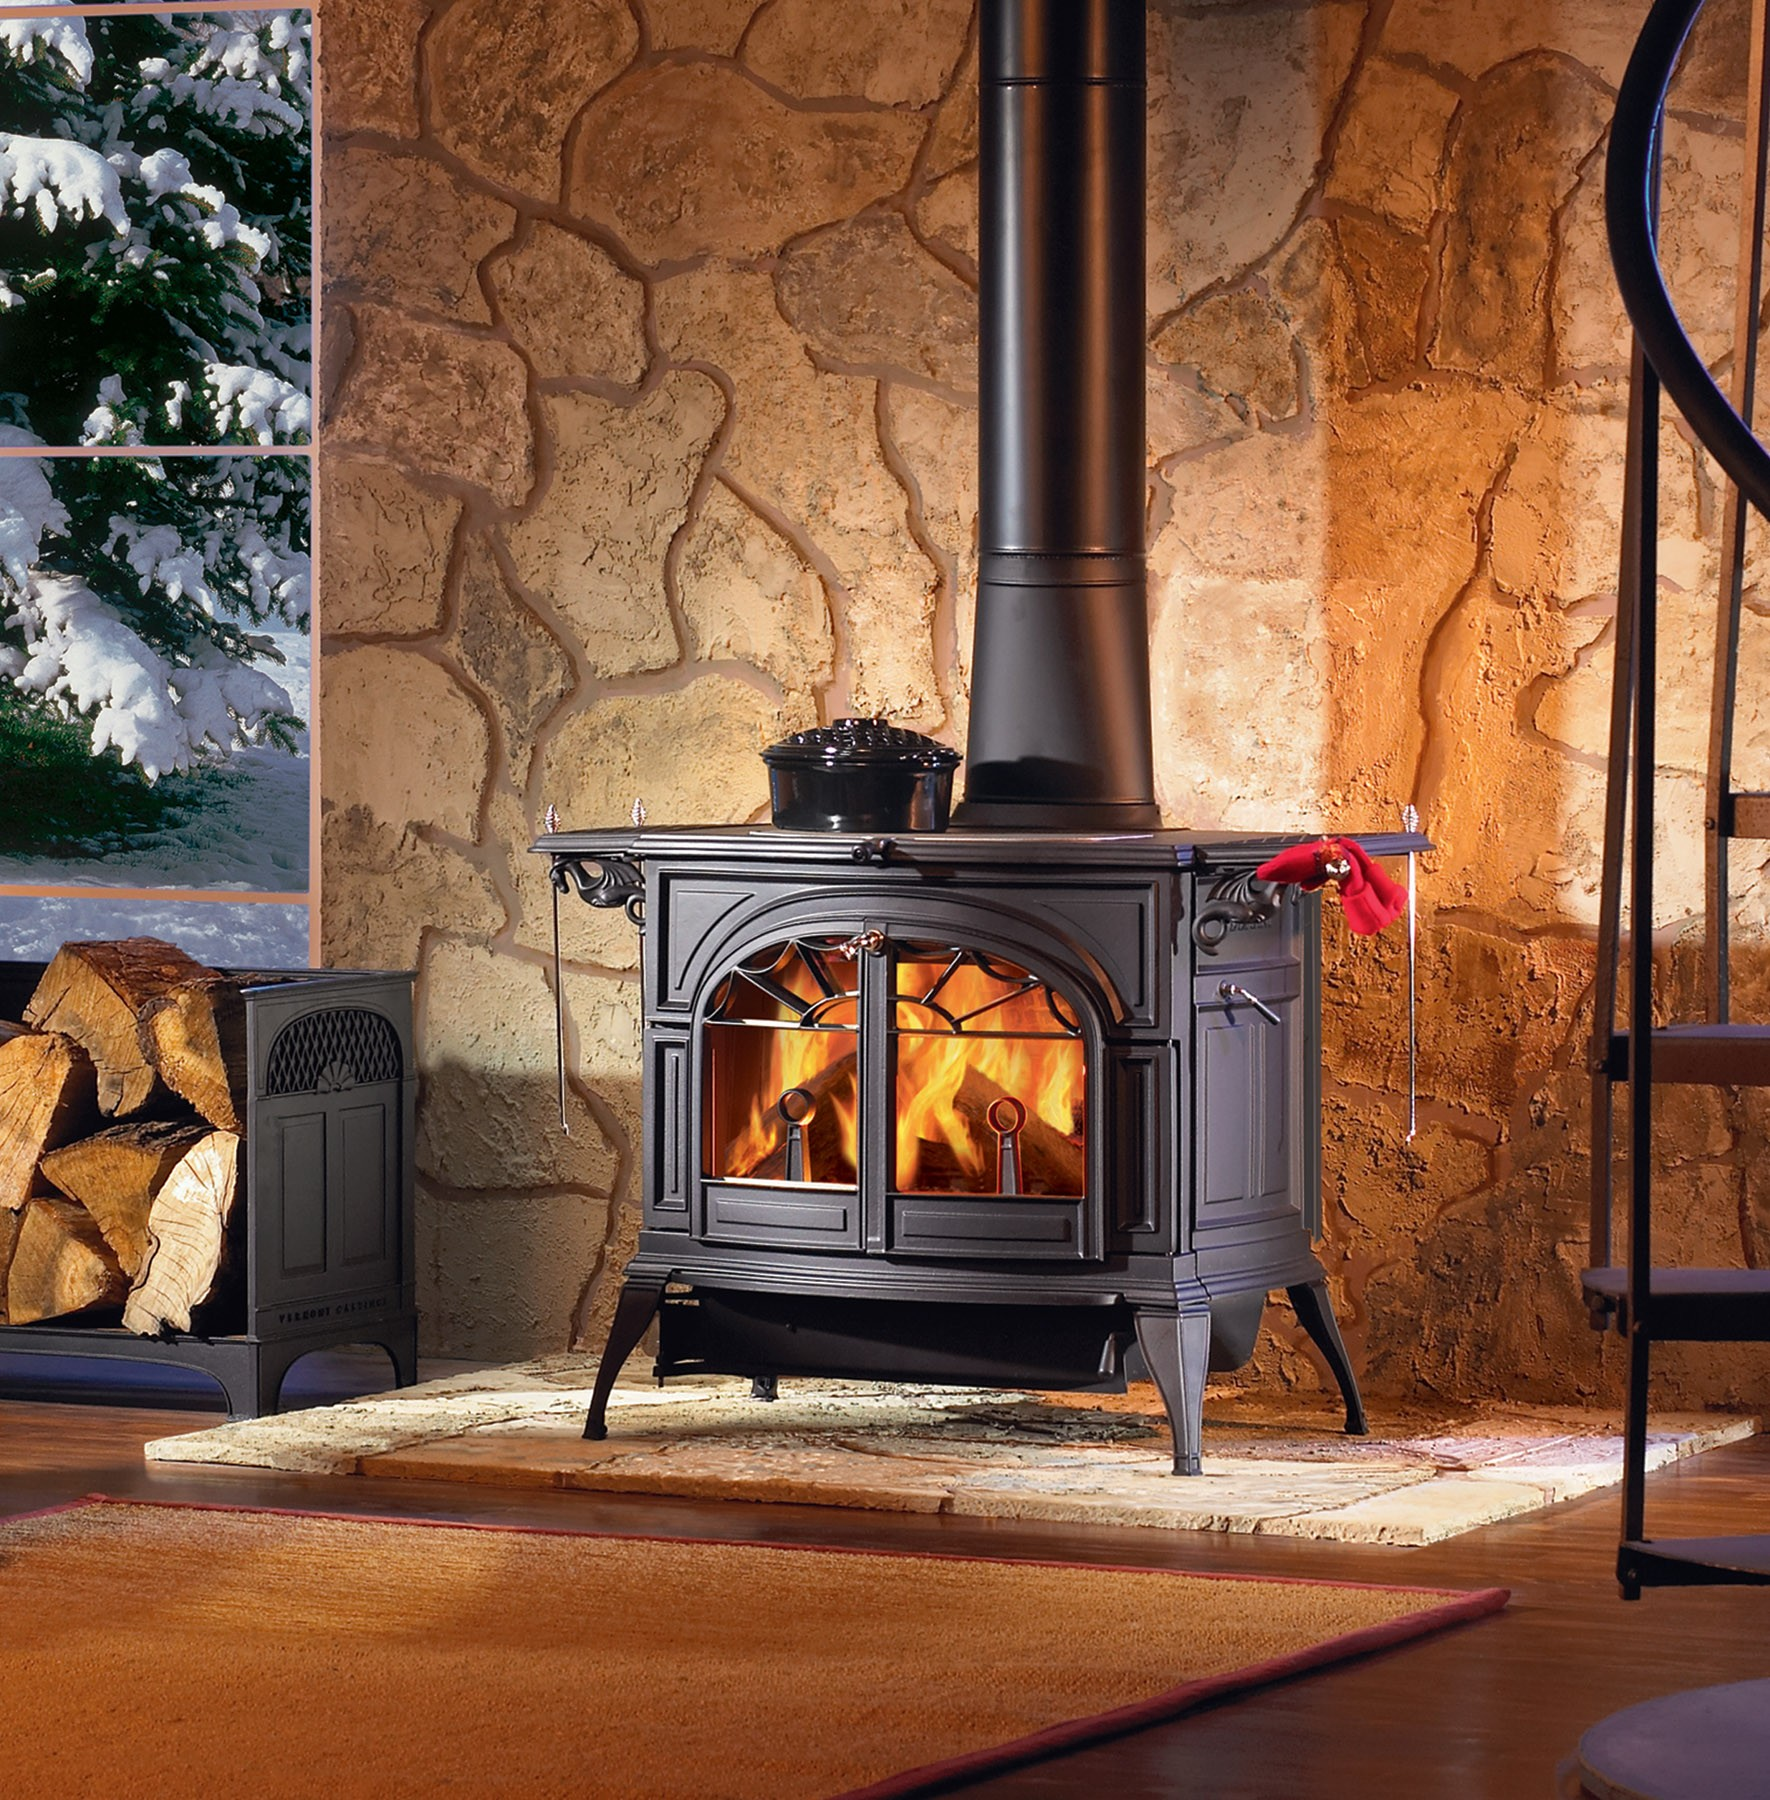 Bowden 39 S Fireside Wood Burning Stoves Inserts Bowden 39 S